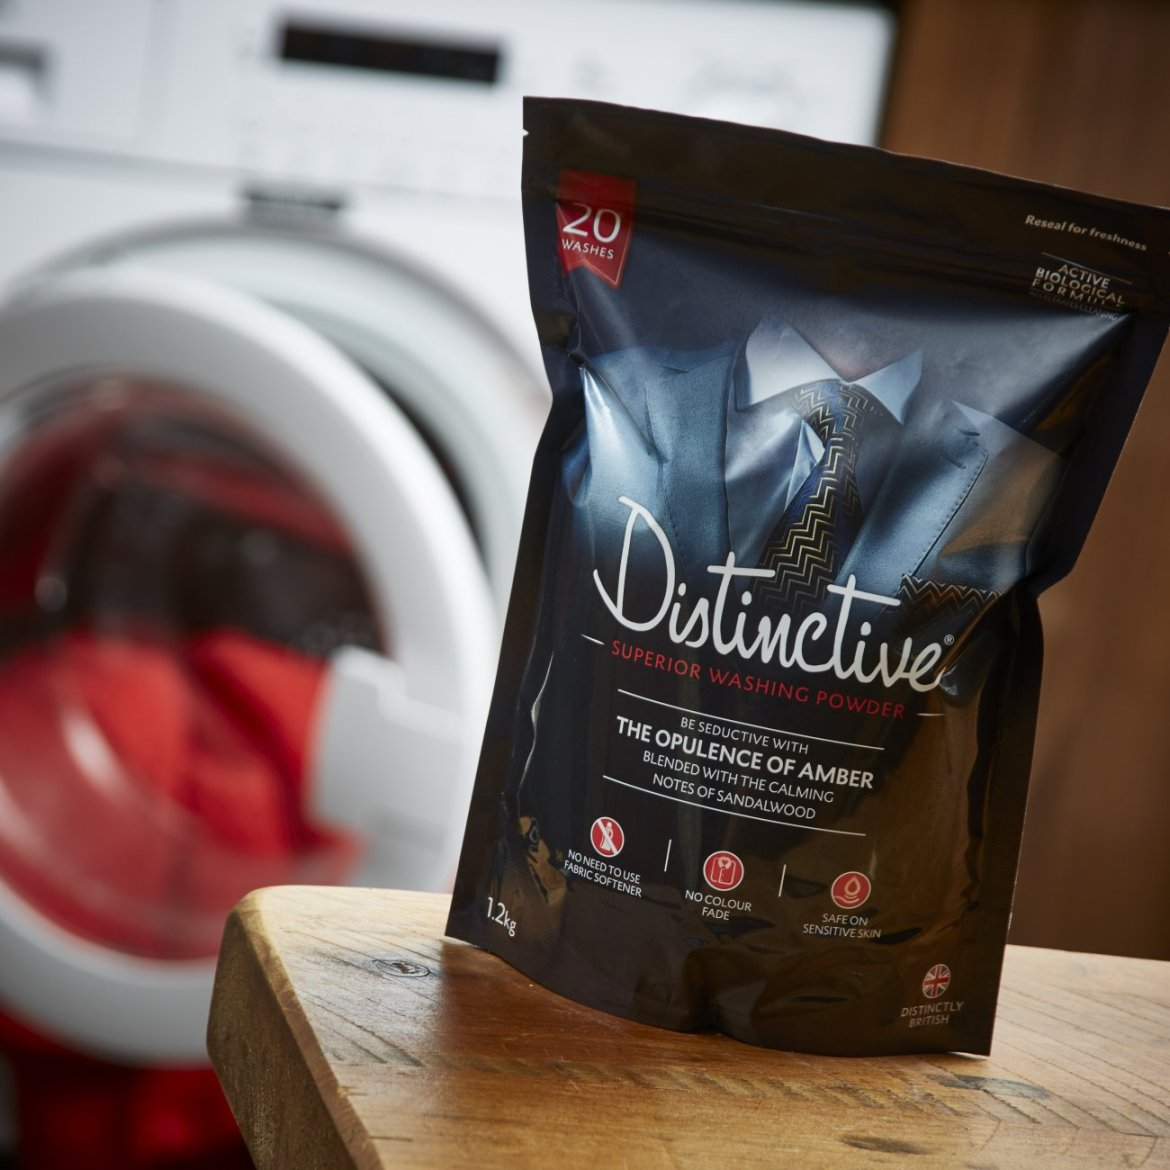 Laundry detergent that smells like cologne